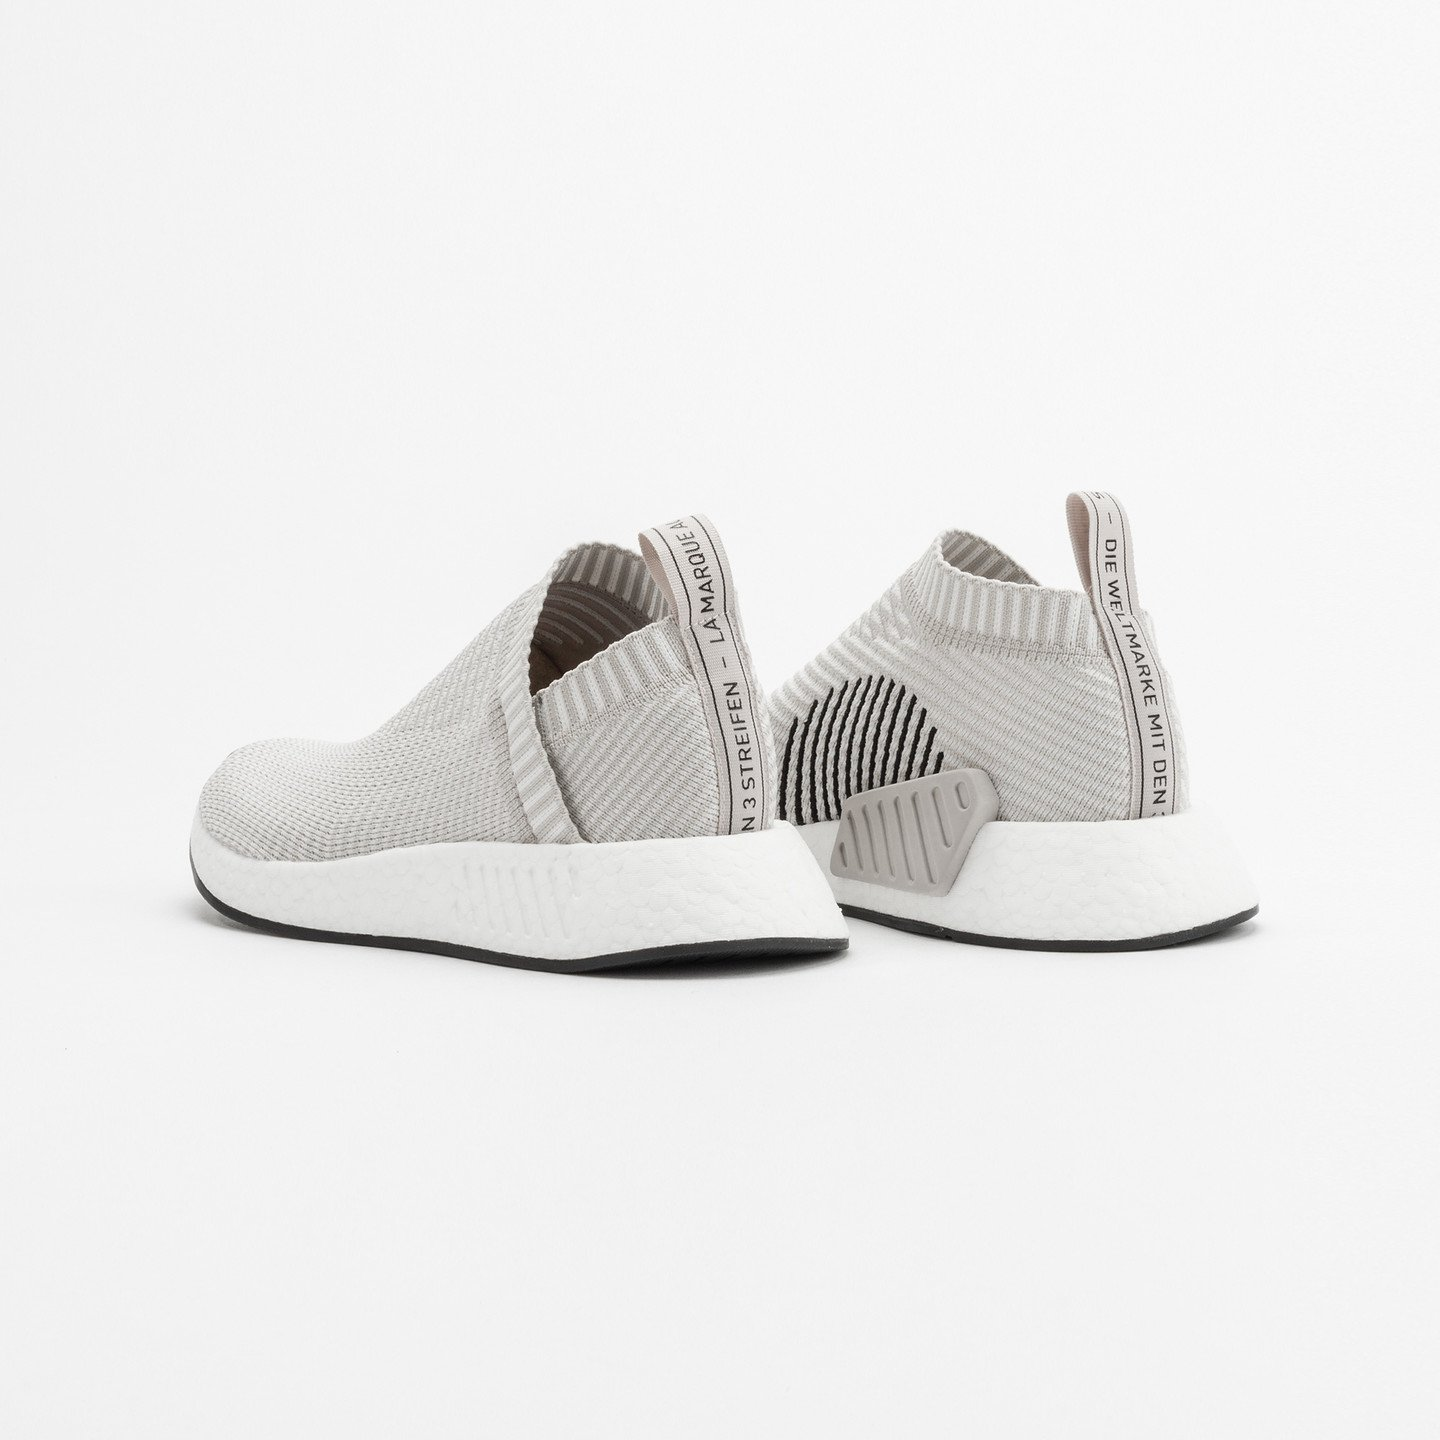 adidas nmd cs2 pk w grey white black ba7213 179. Black Bedroom Furniture Sets. Home Design Ideas